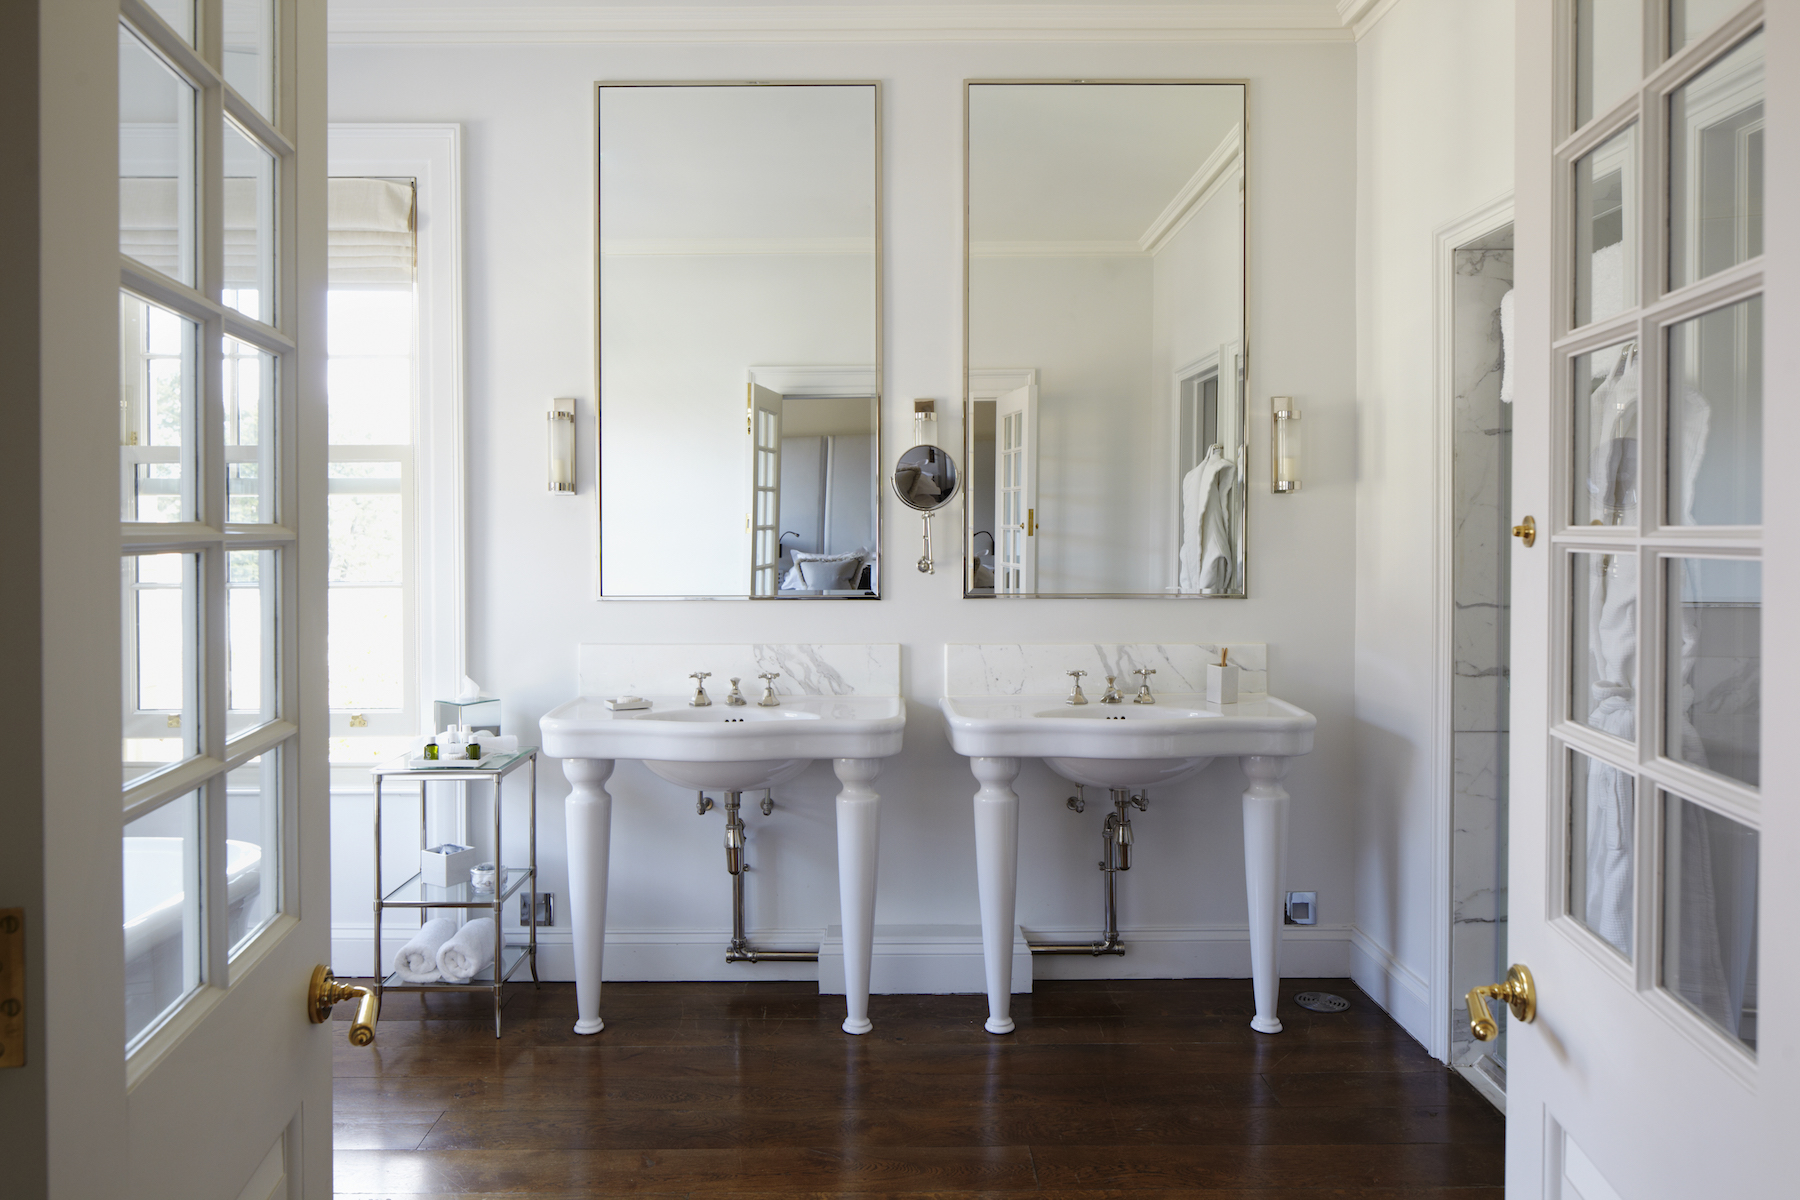 The Fastest Way To A Cleaner Bathroom Real Simple - Fastest way to clean a bathroom